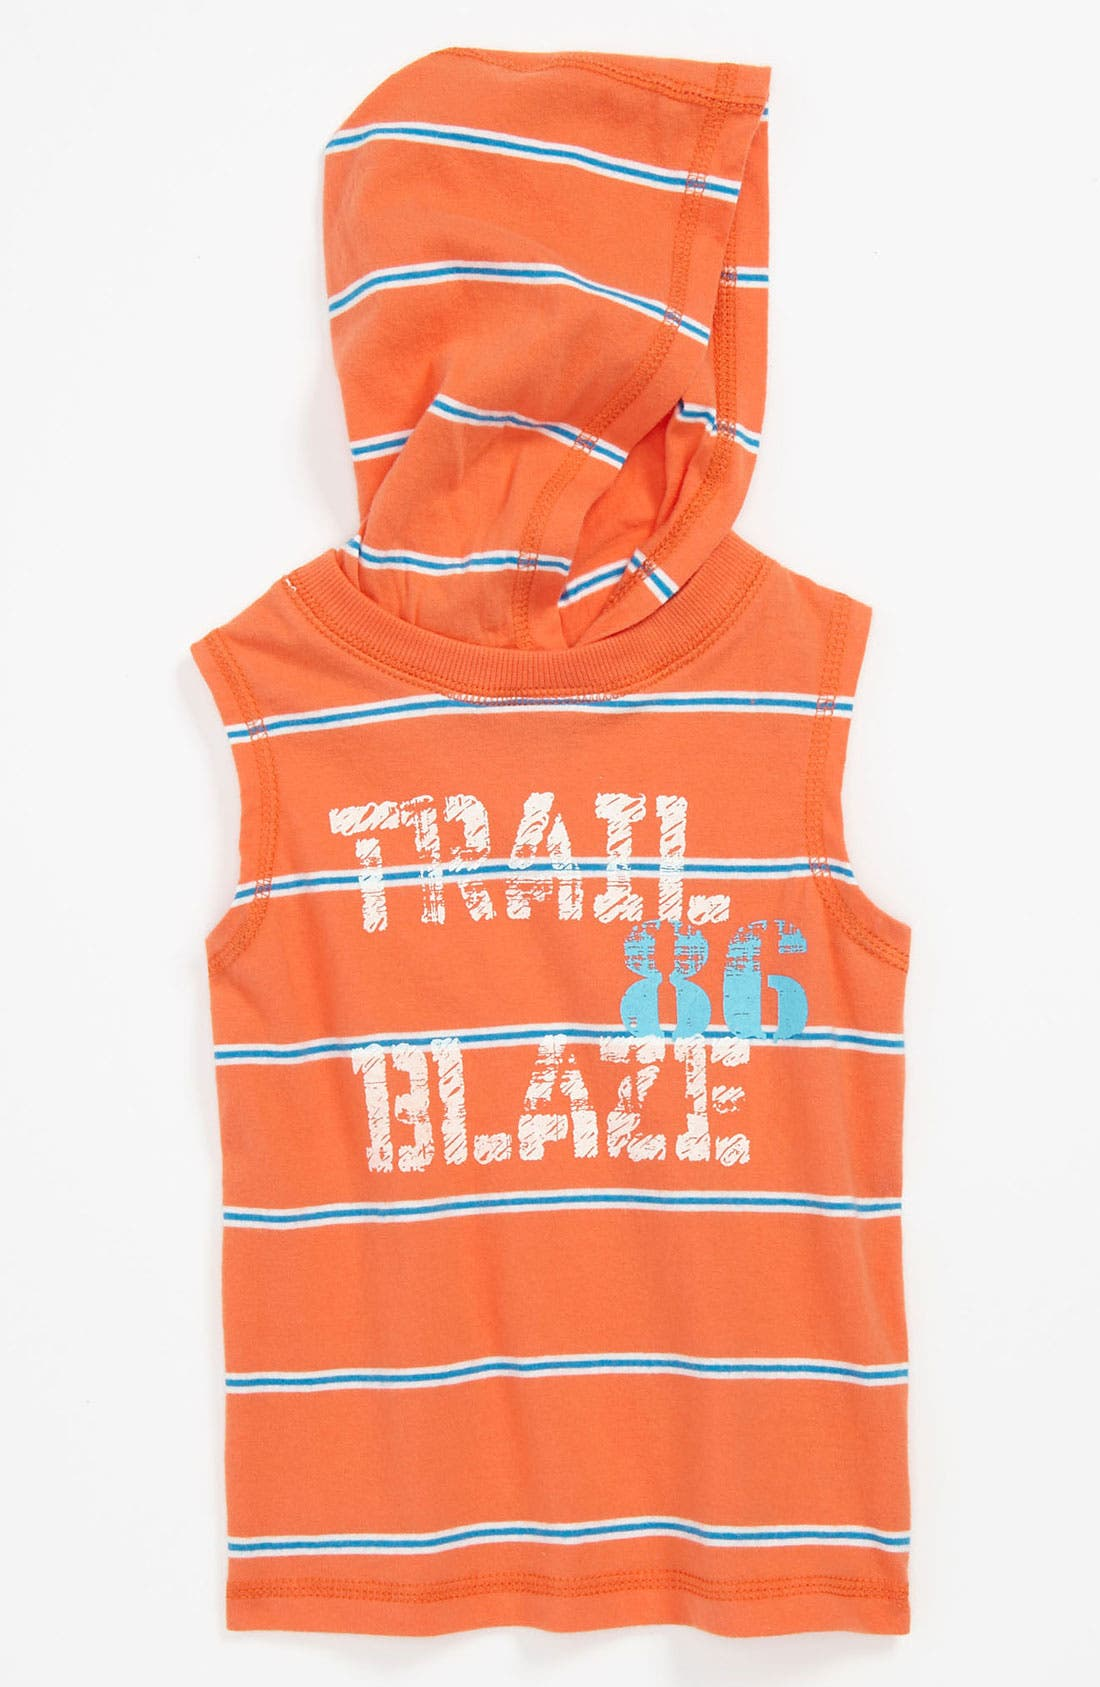 Main Image - Pumpkin Patch Hooded Top (Toddler)